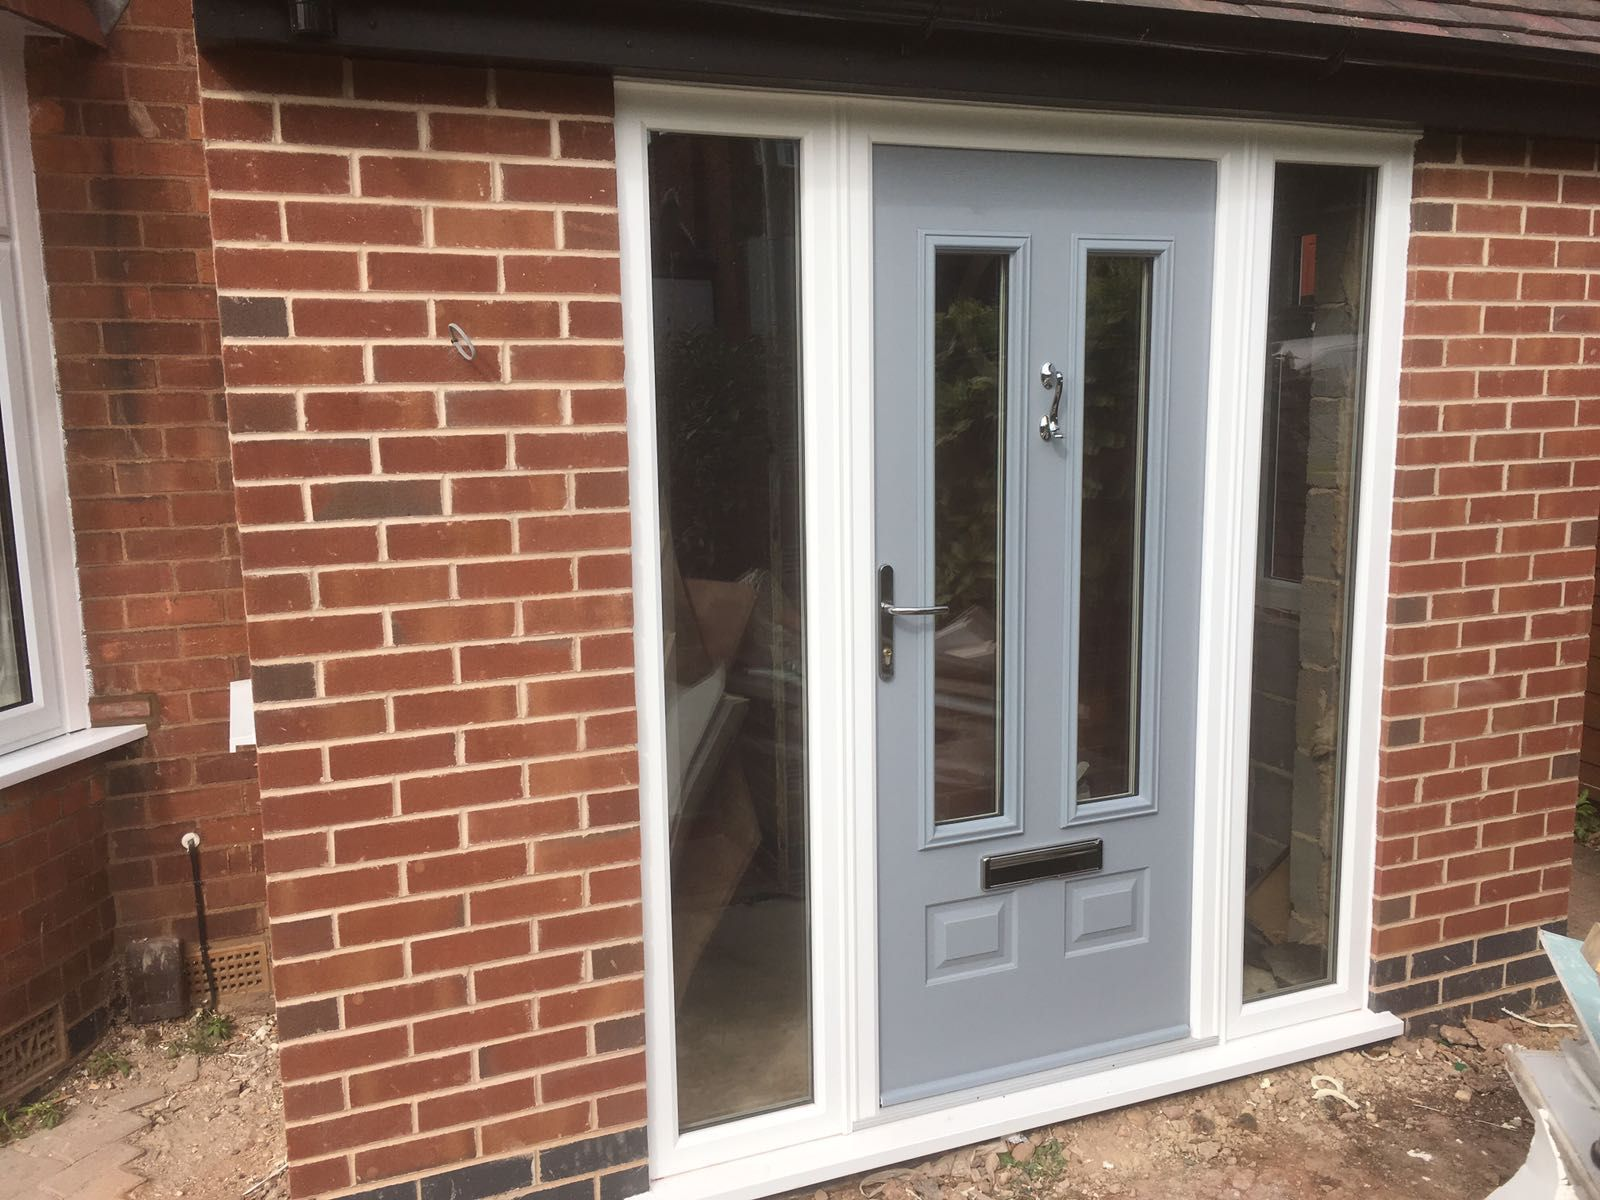 Fenesta upvc doors windows glass flooring - White Synseal Upvc Six Section Bay Windows At The Front Of The Building And Grey Upvc